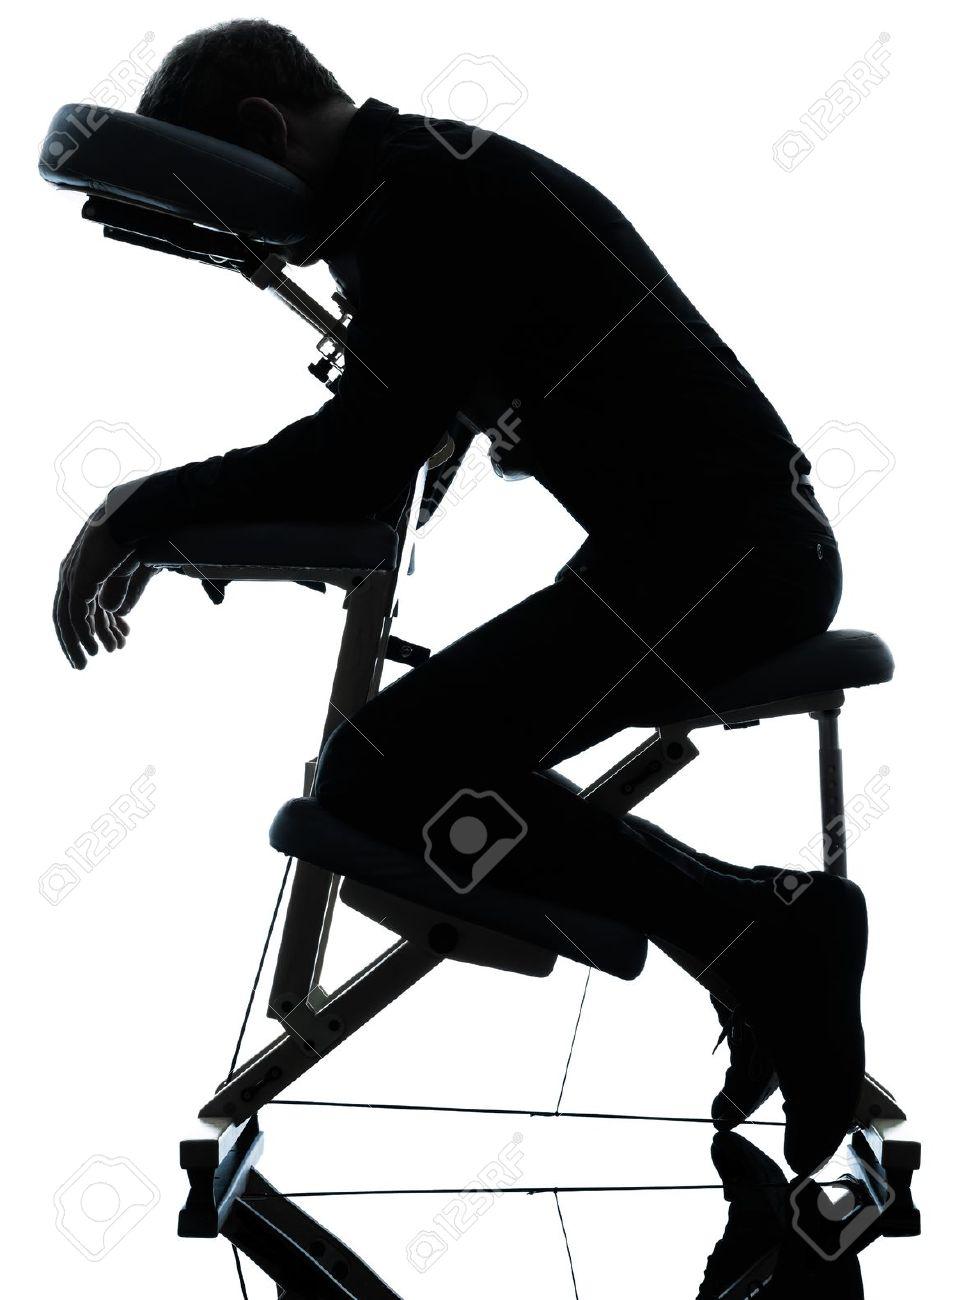 chair massage. one man on chair massage in silhouette studio white background stock photo - 15480732